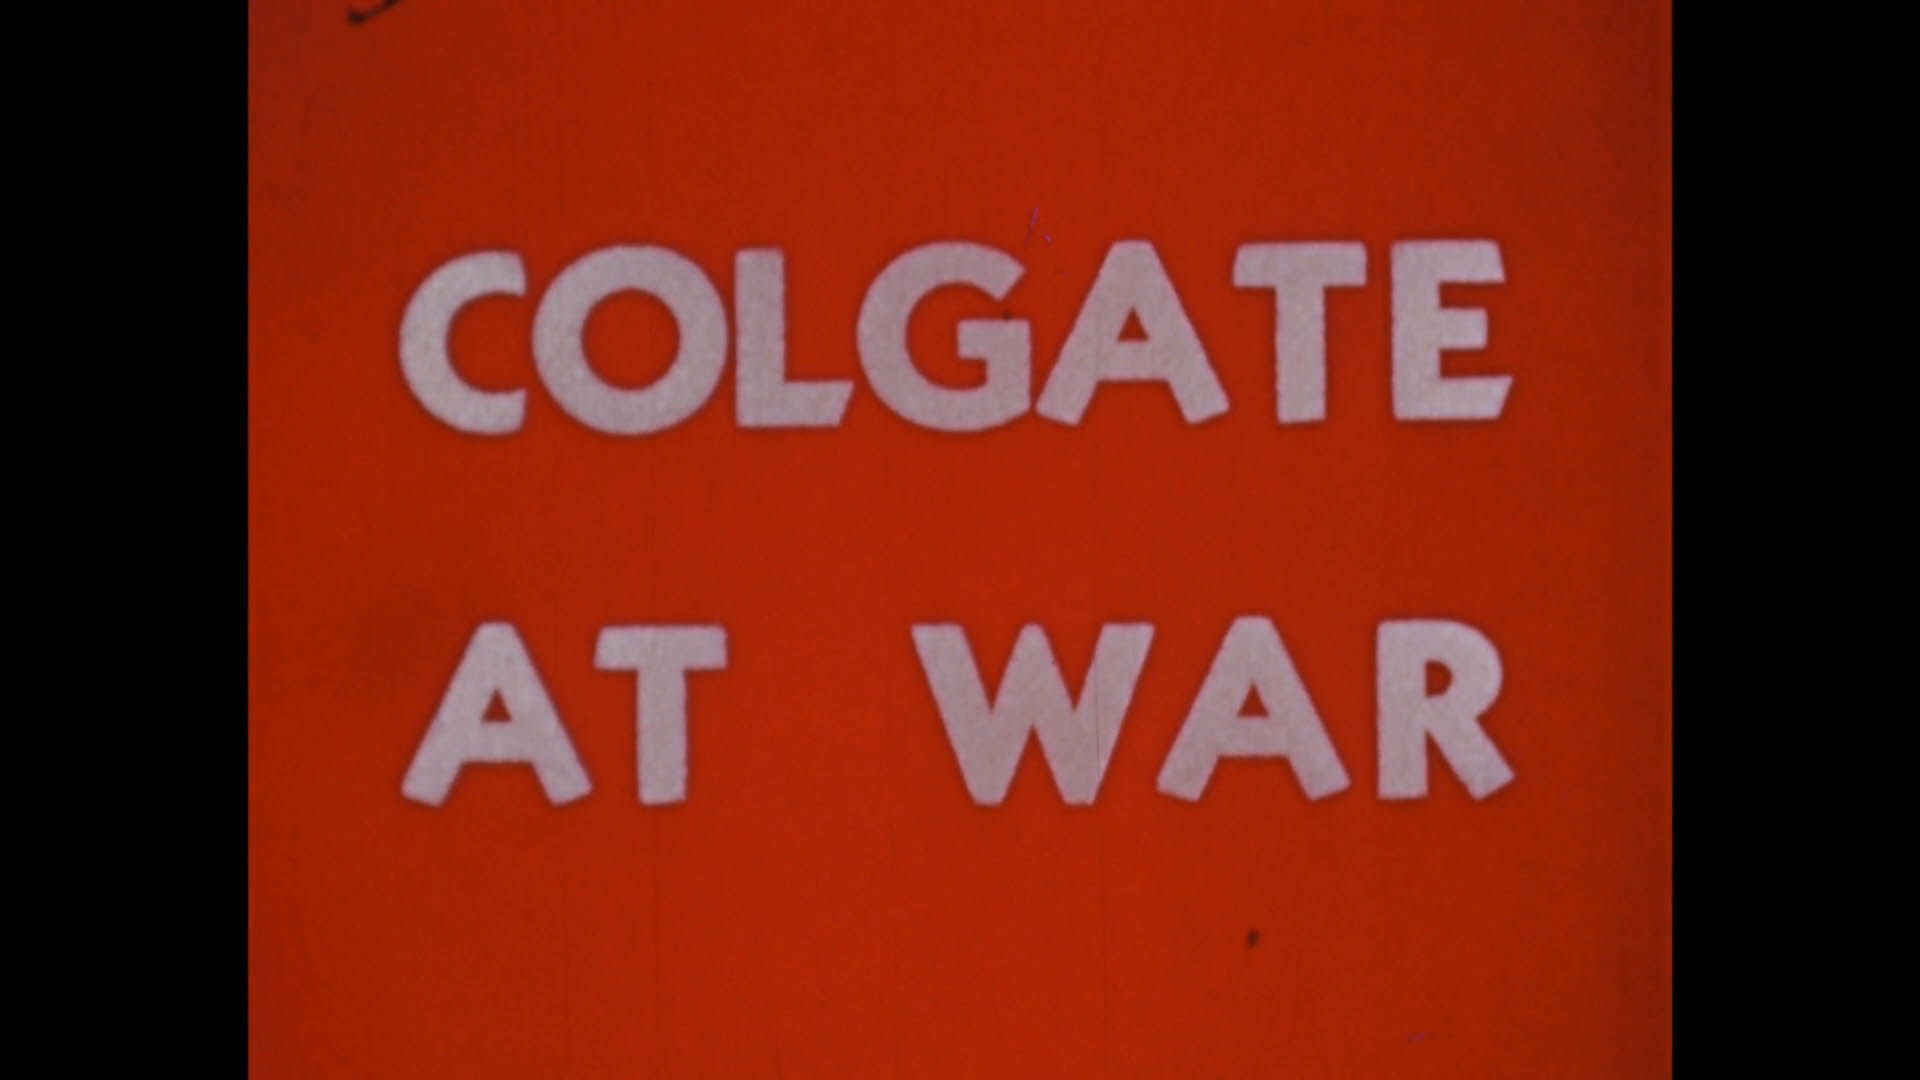 Colgate at War